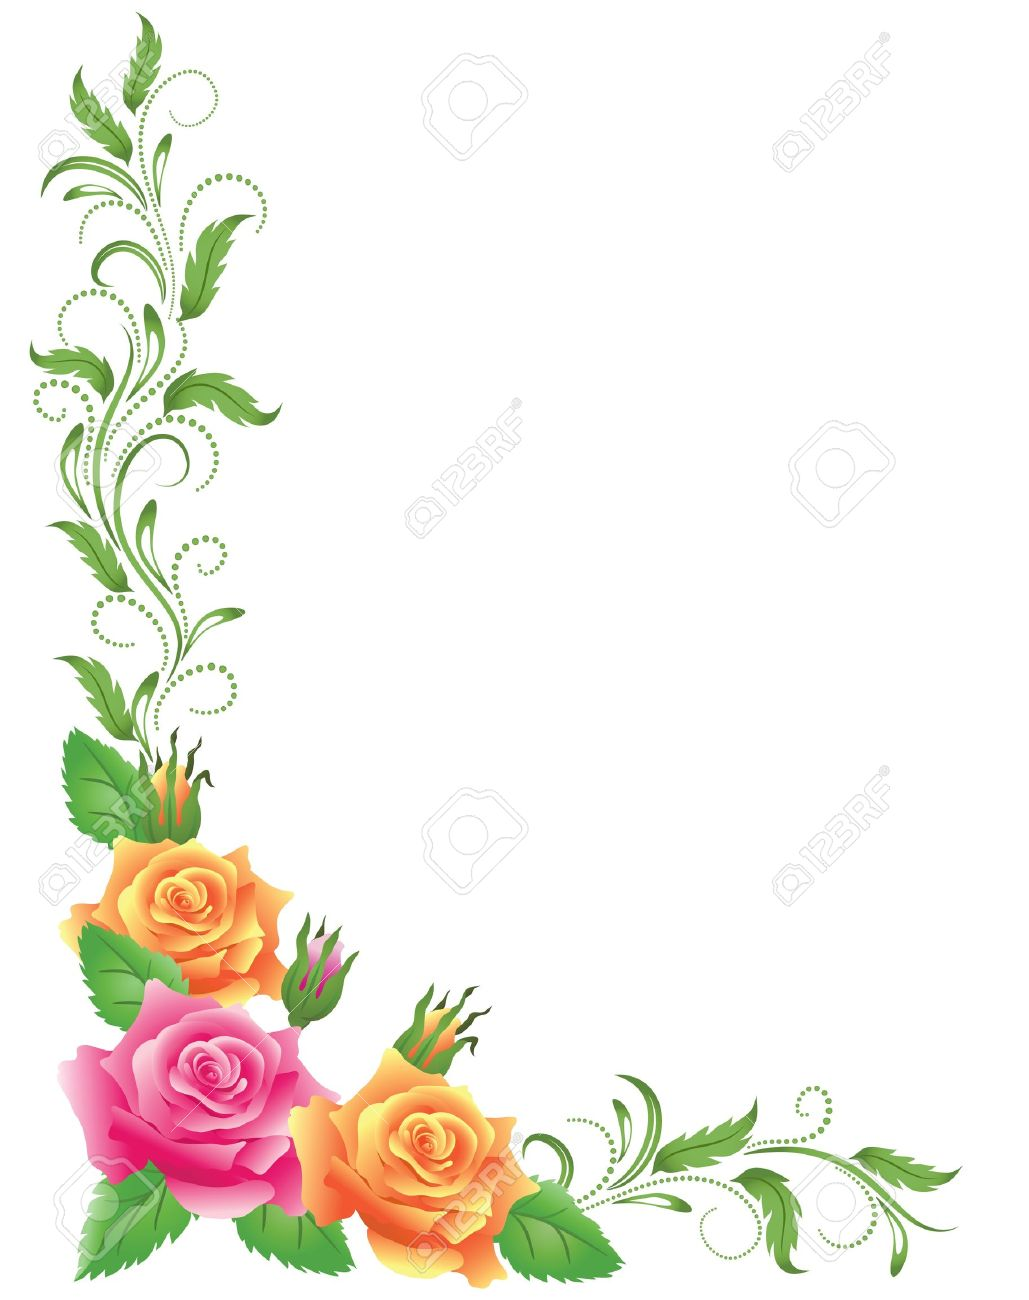 Pink and yellow roses with green floral ornament - 14215726